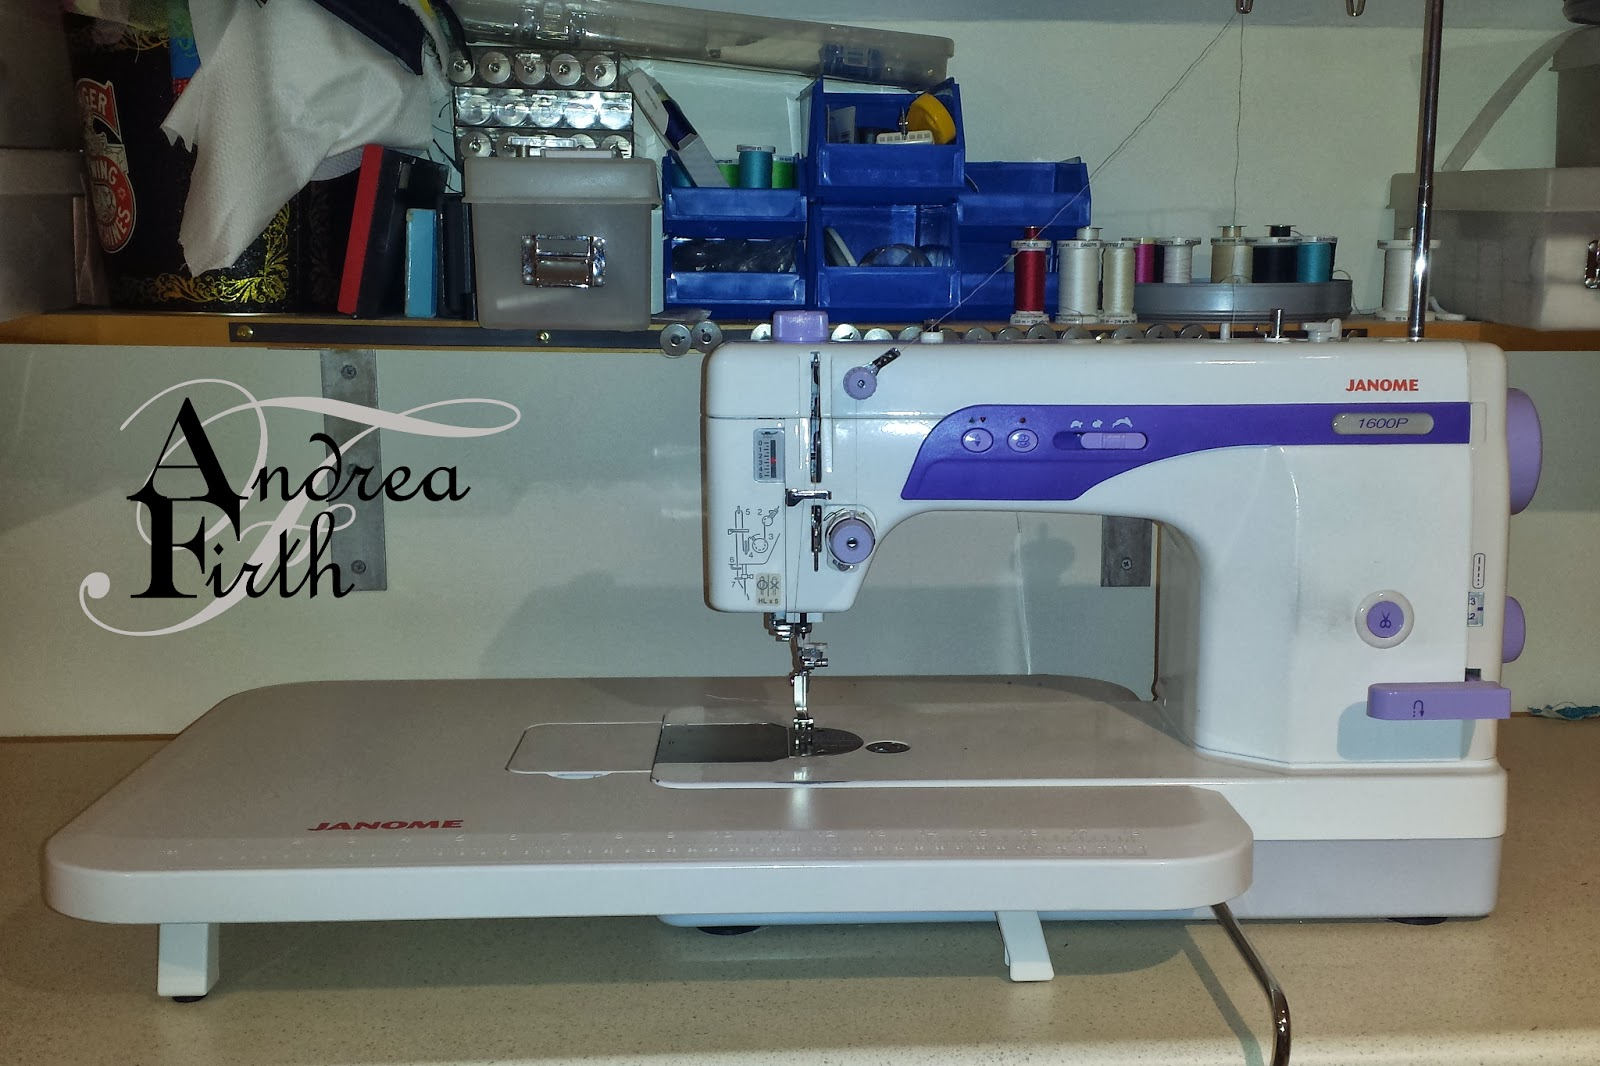 how to clean sewing machine janome